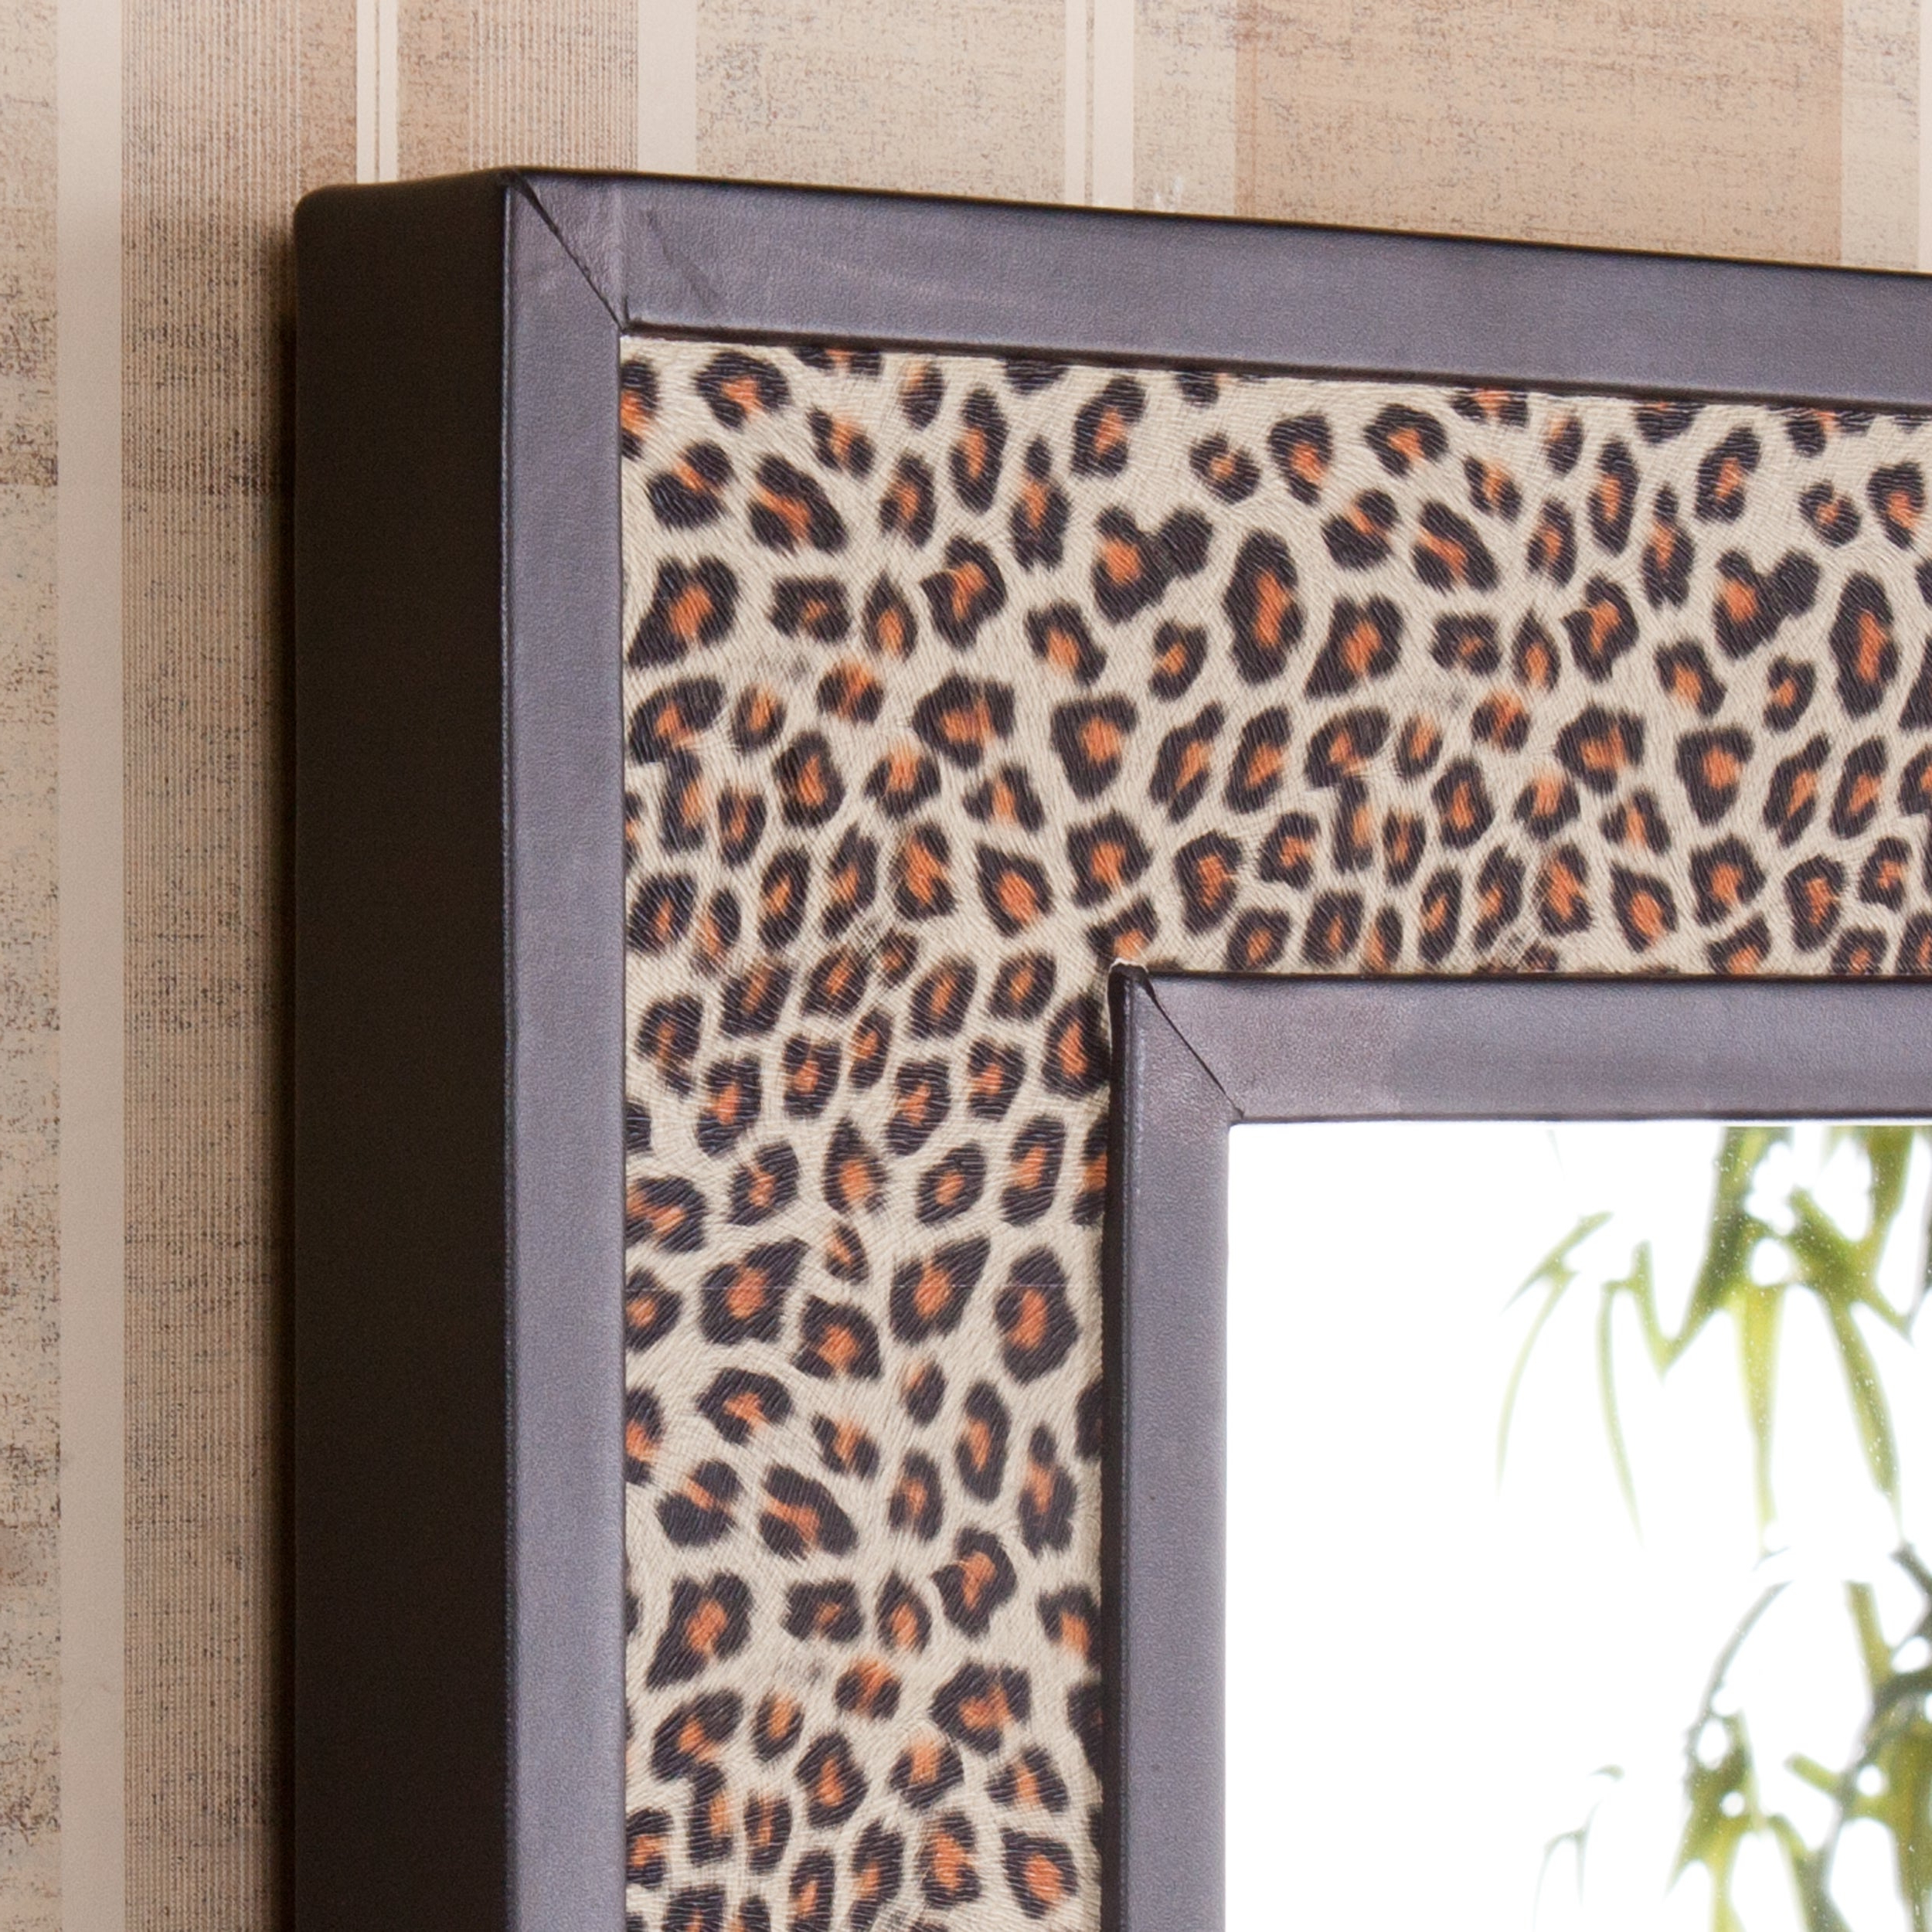 Preferred Harper Blvd Pavia Leopard Animal Print Decorative Wall Mirror Throughout Leopard Wall Mirrors (View 16 of 20)